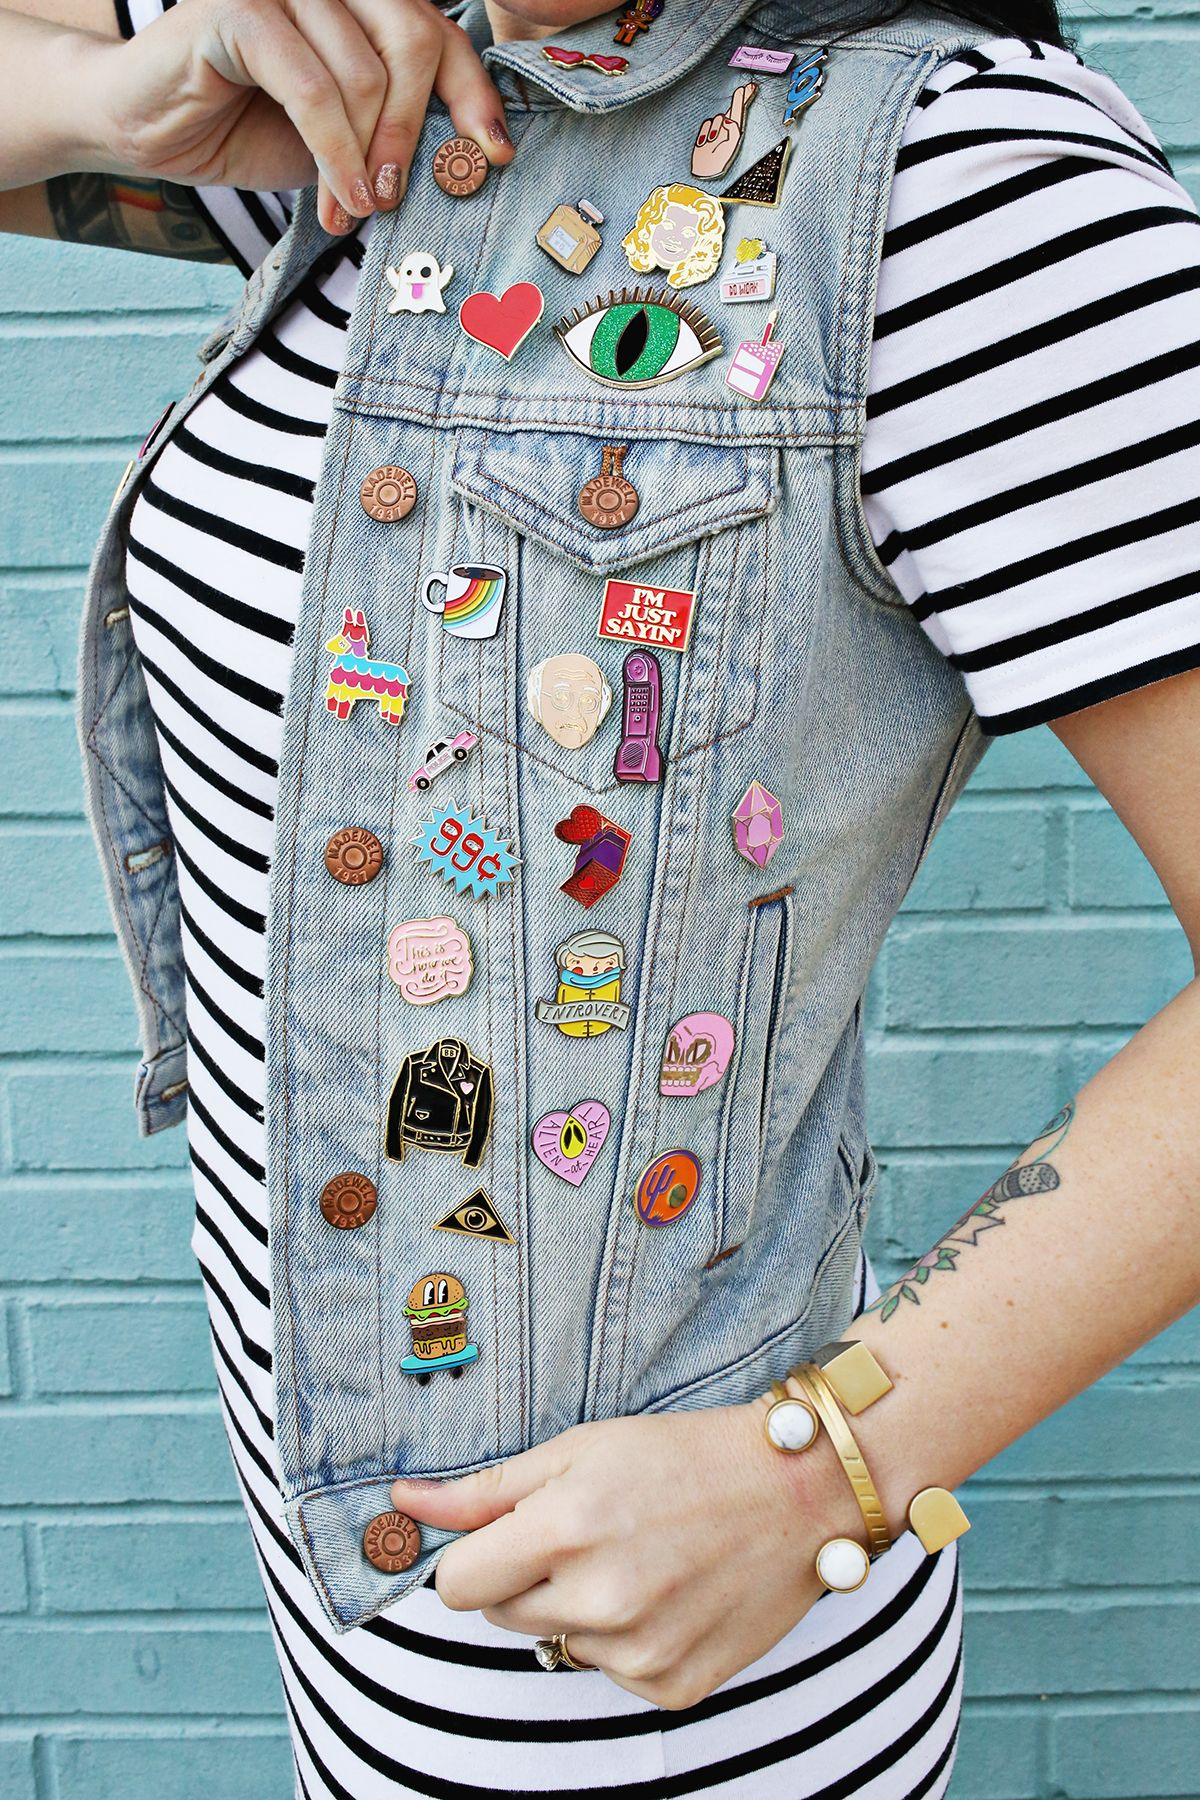 Home & Garden Honest 1 Pcs Cartoon Cat Pearl Pendant Metal Brooch Button Pins Denim Jacket Pin Jewelry Decoration Badge For Clothes Lapel Pins Year-End Bargain Sale Apparel Sewing & Fabric